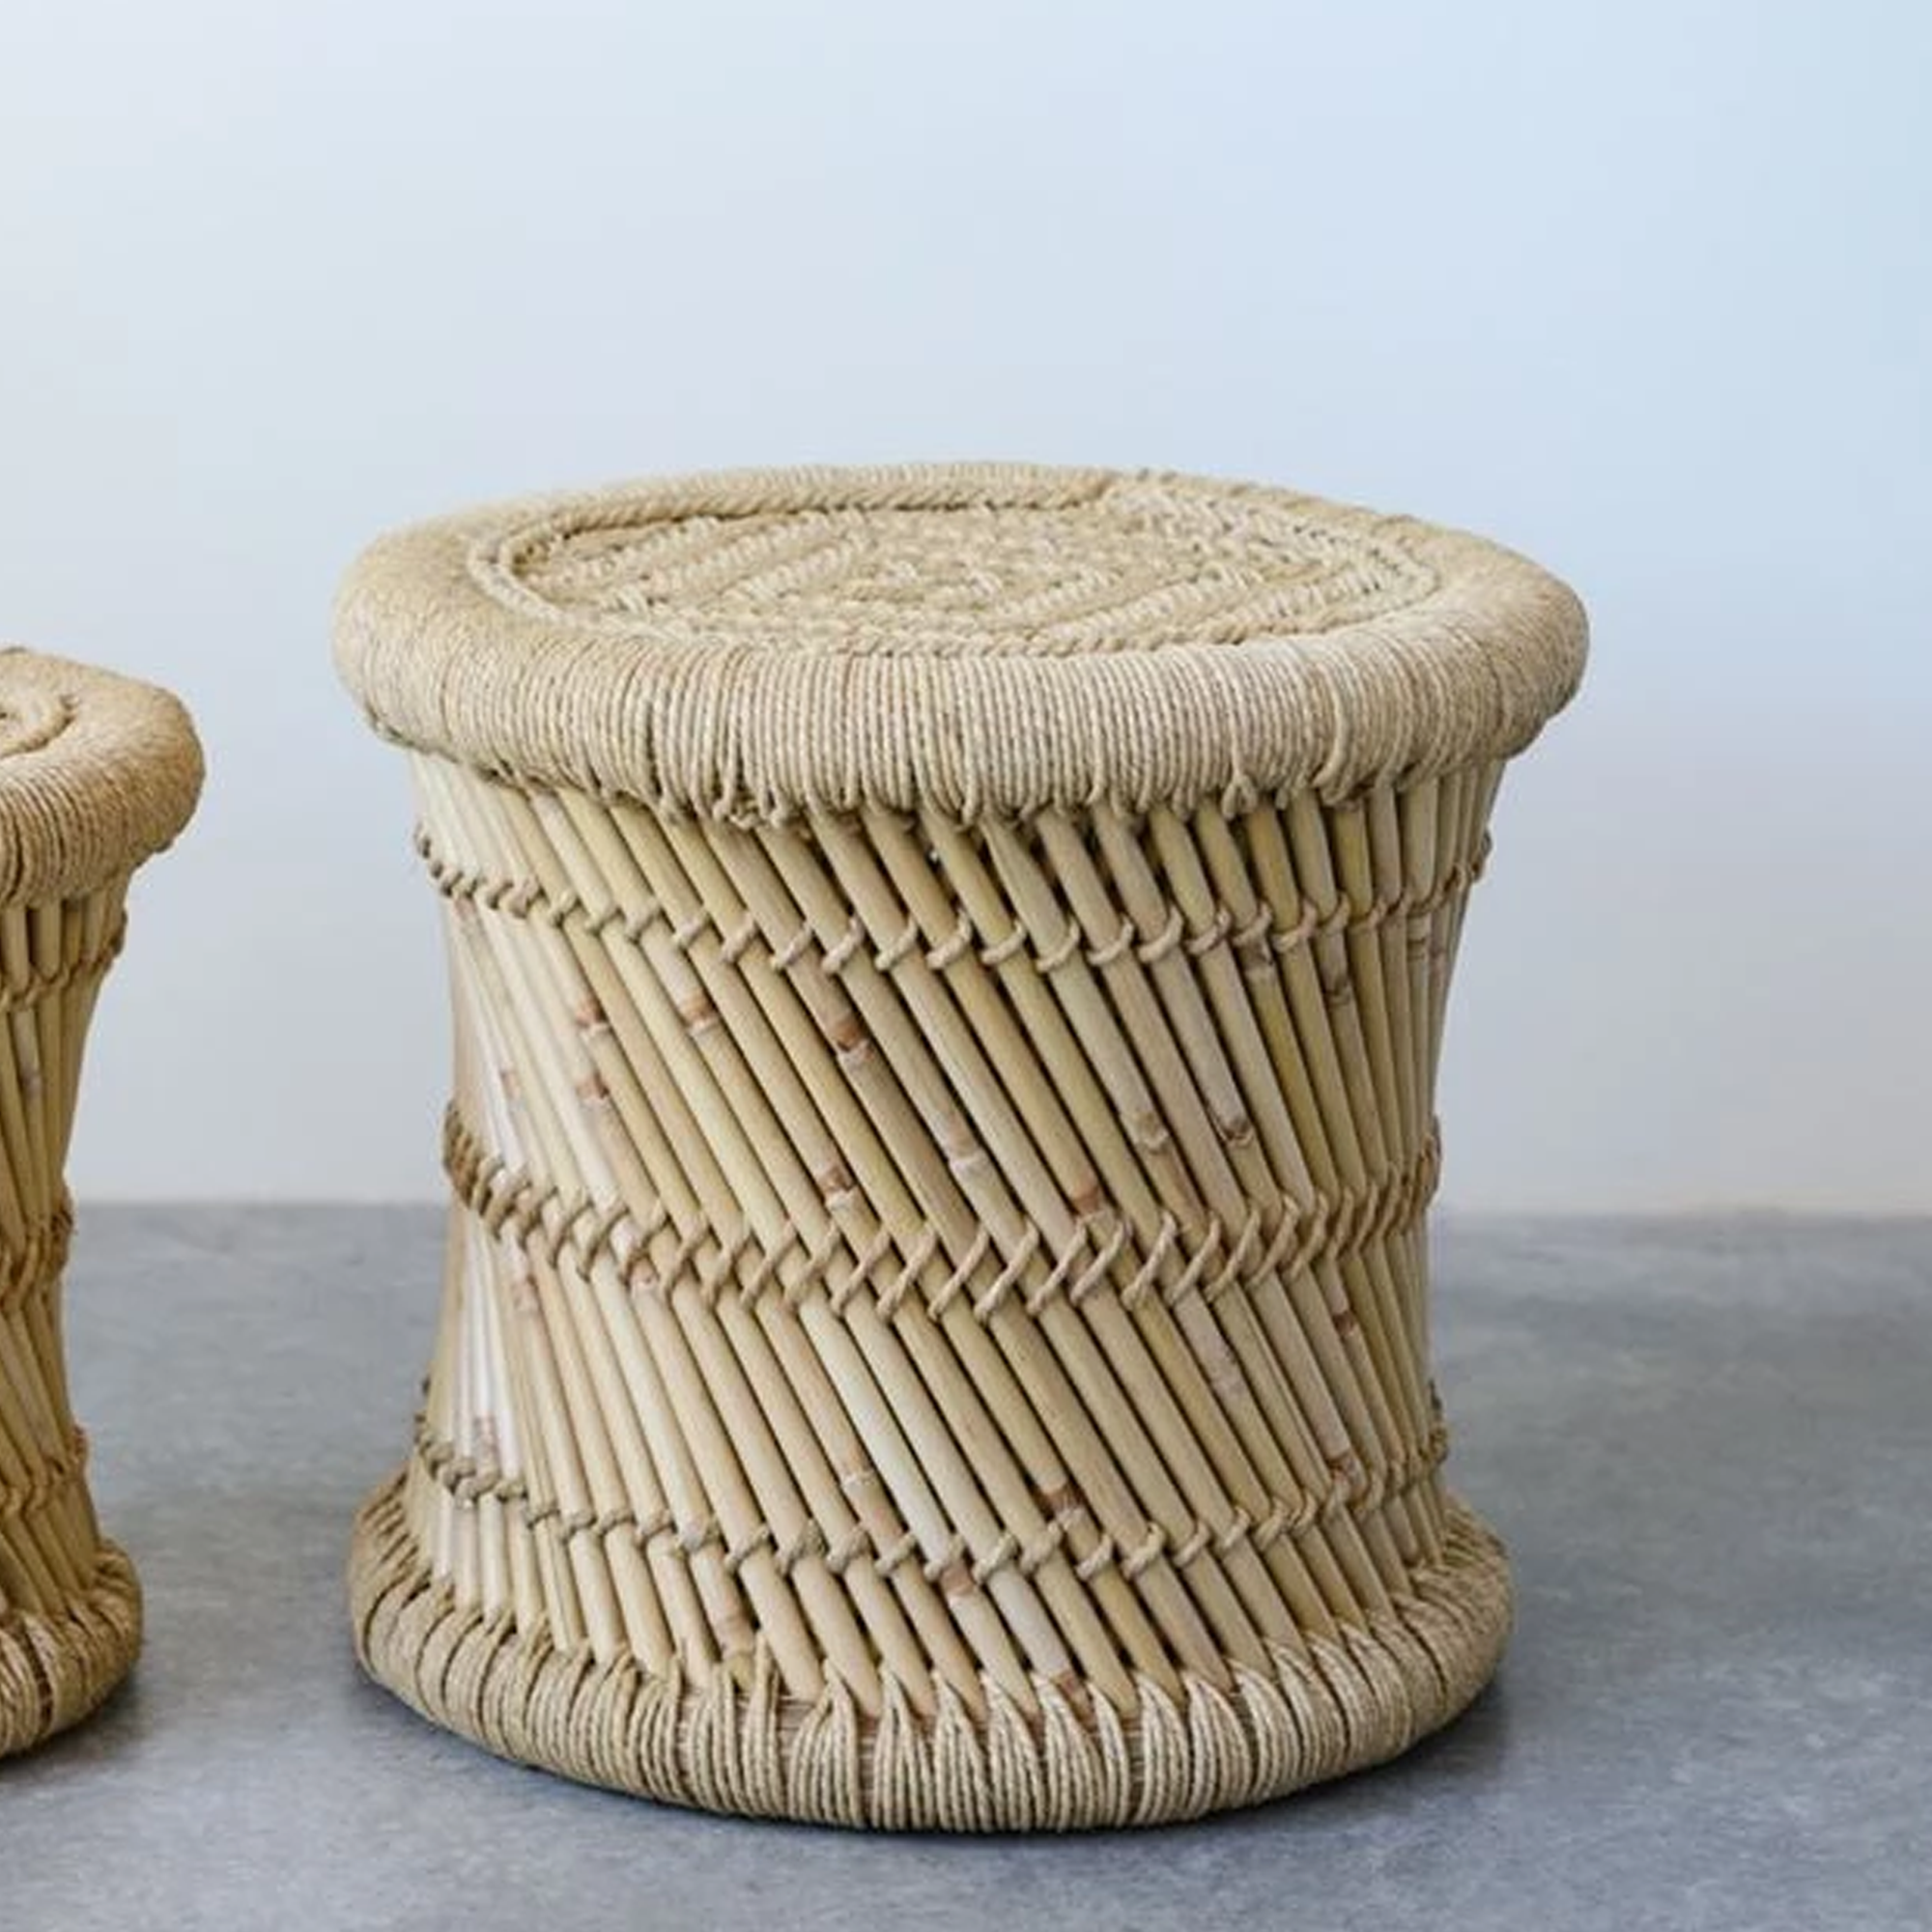 Copy of Bamboo Stands